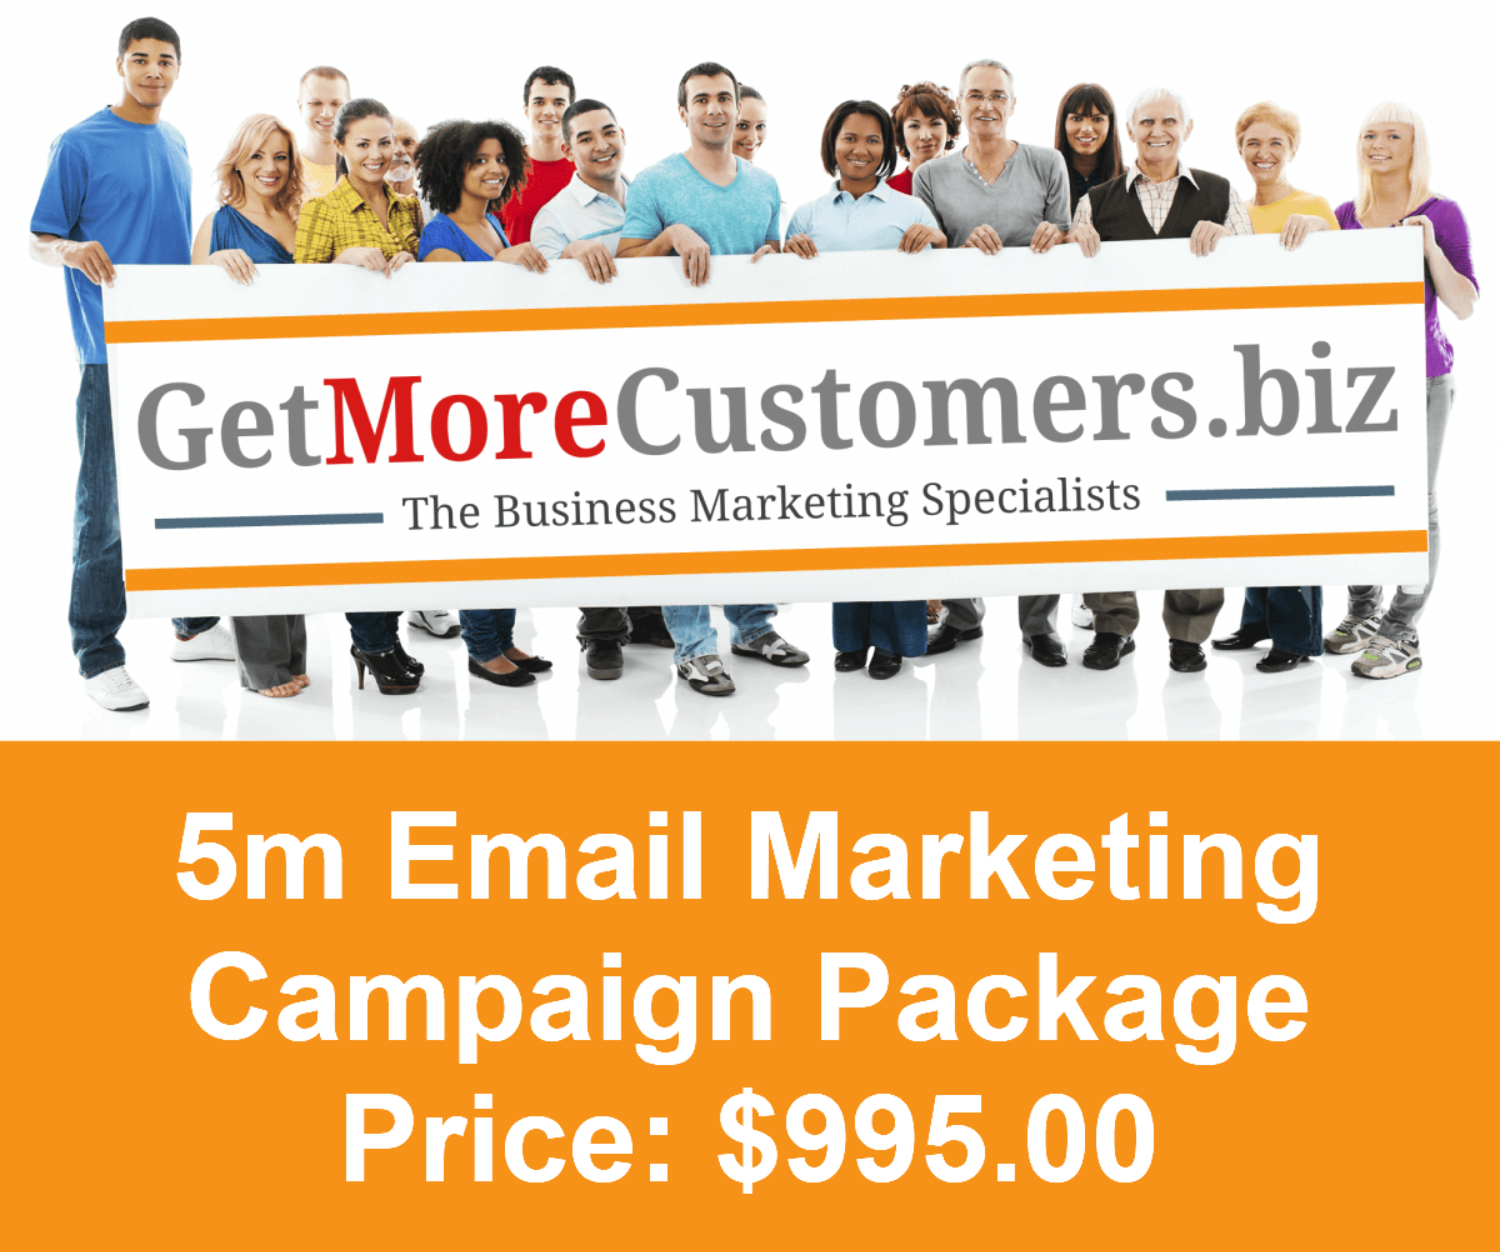 Five Million Email Campaign - $995.00